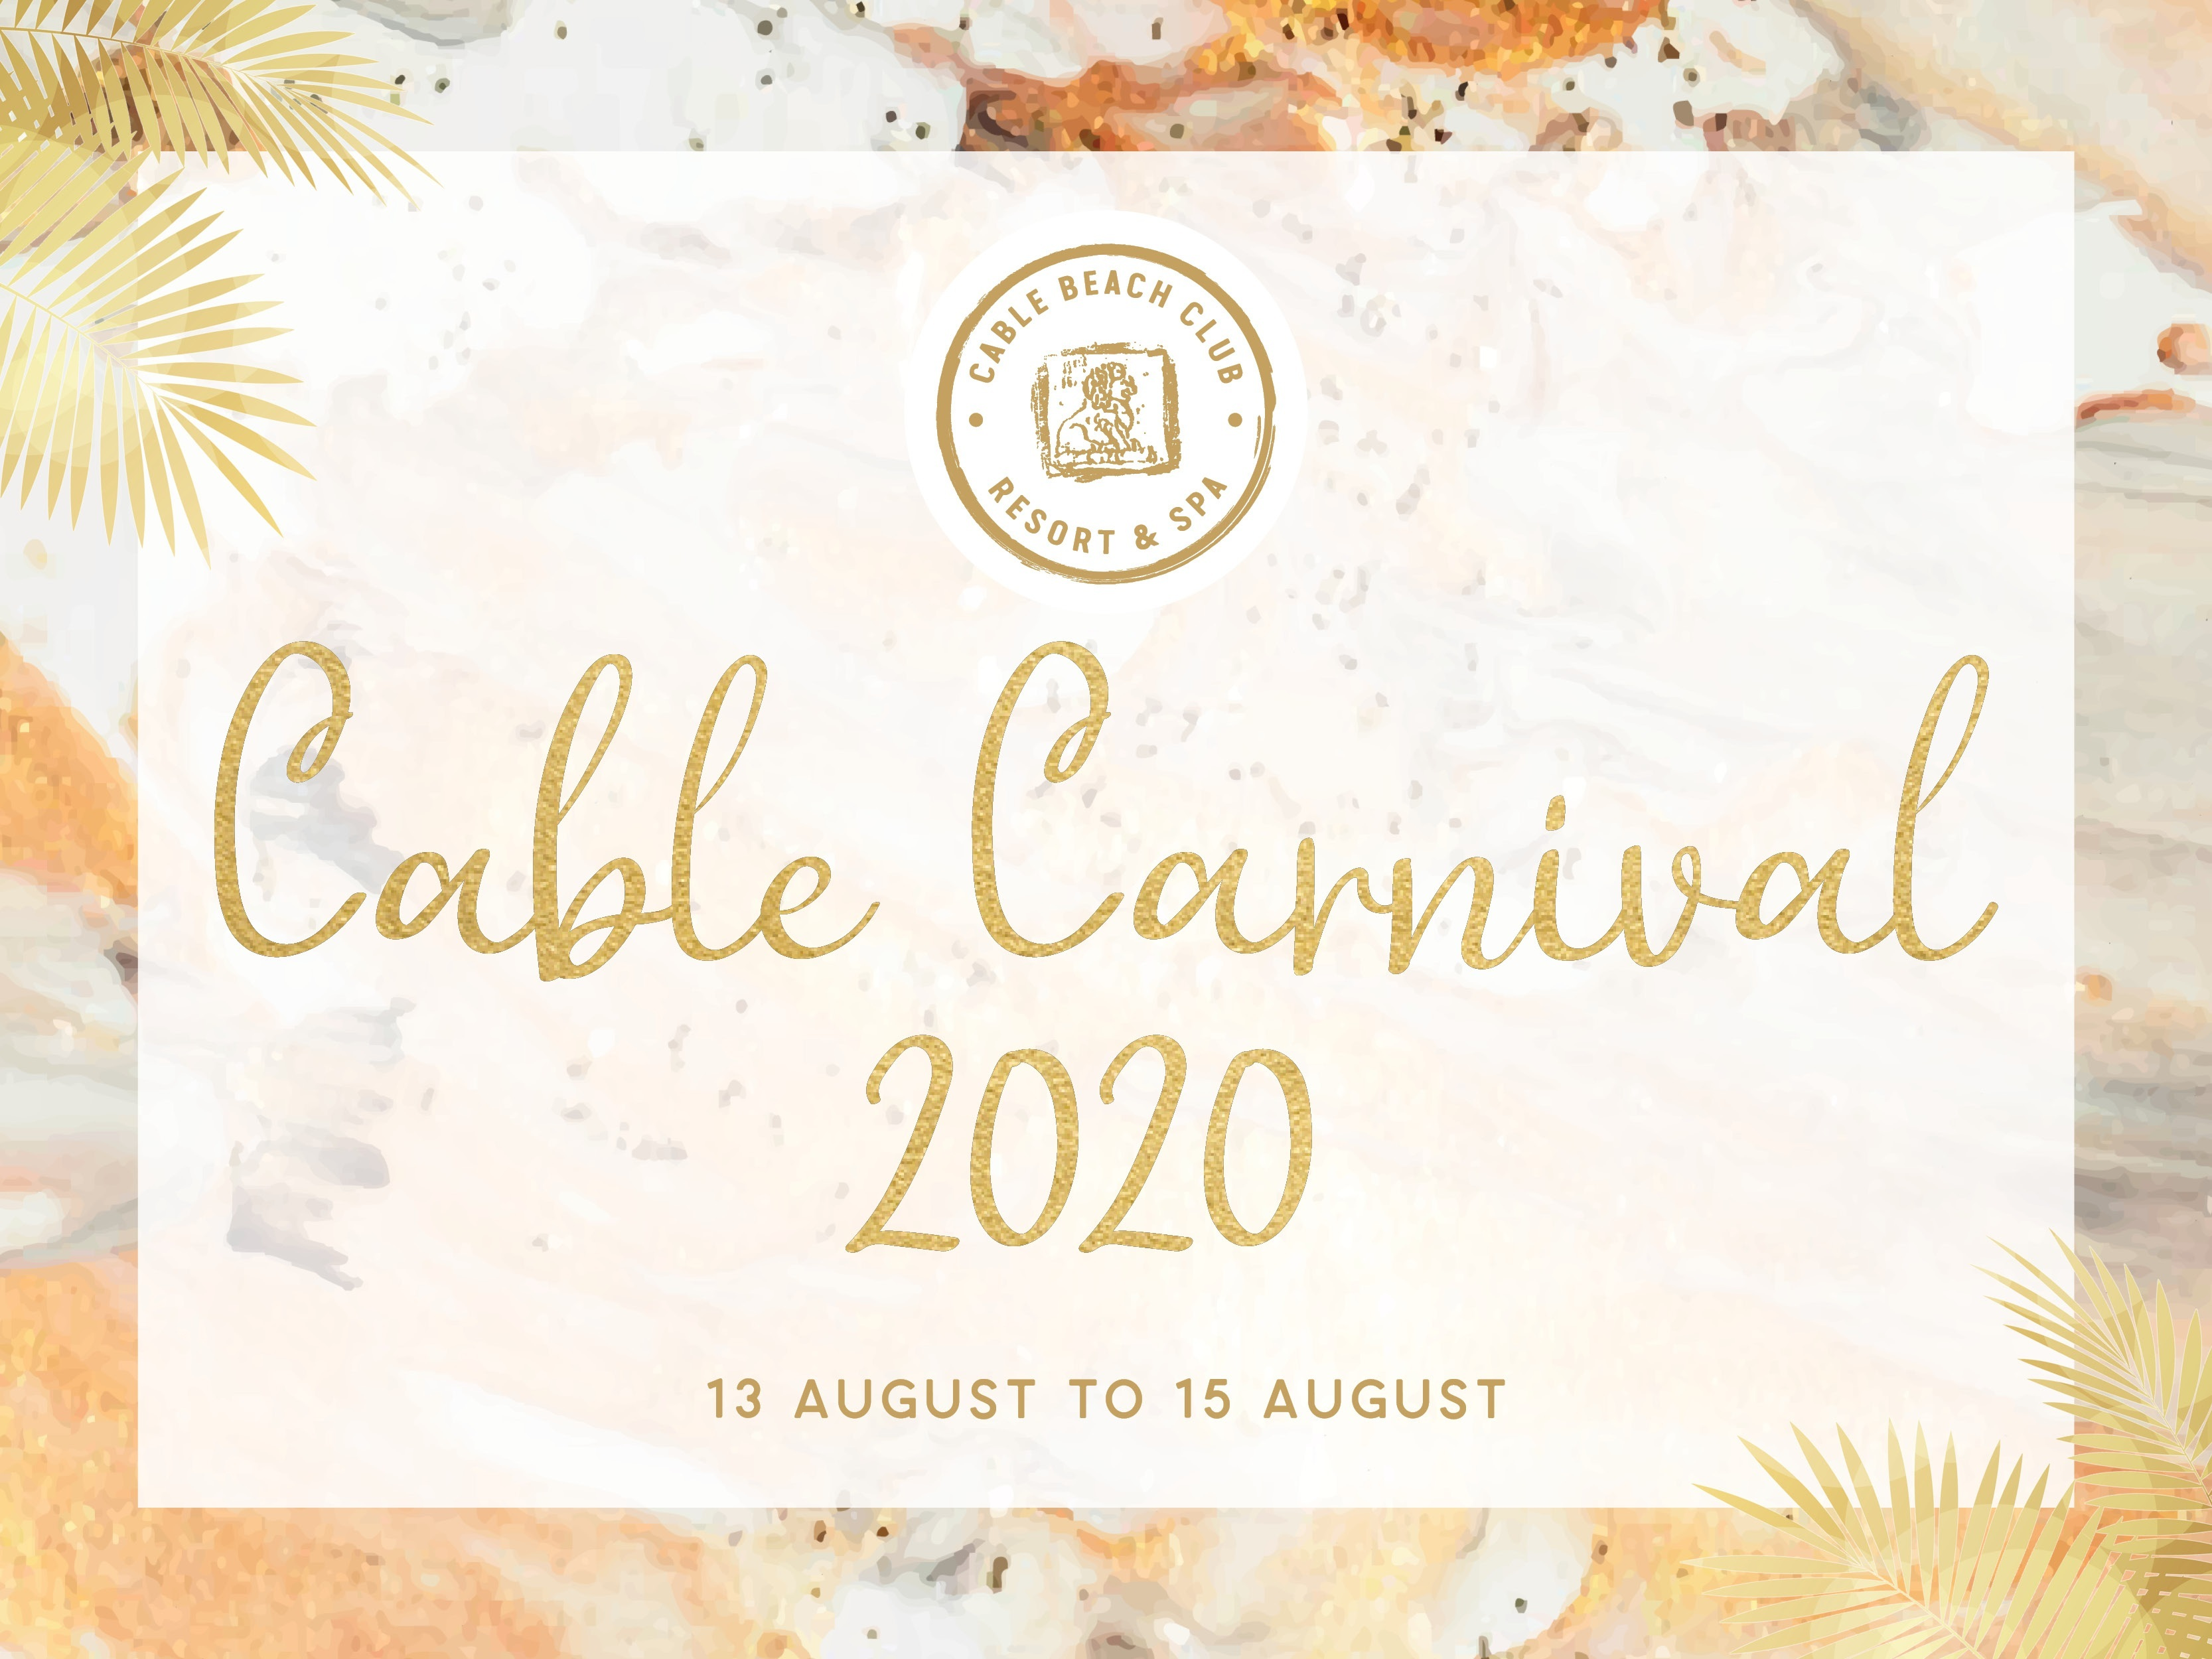 No Broome Cup...no worries! Saddle up for Cable Carnival 2020!